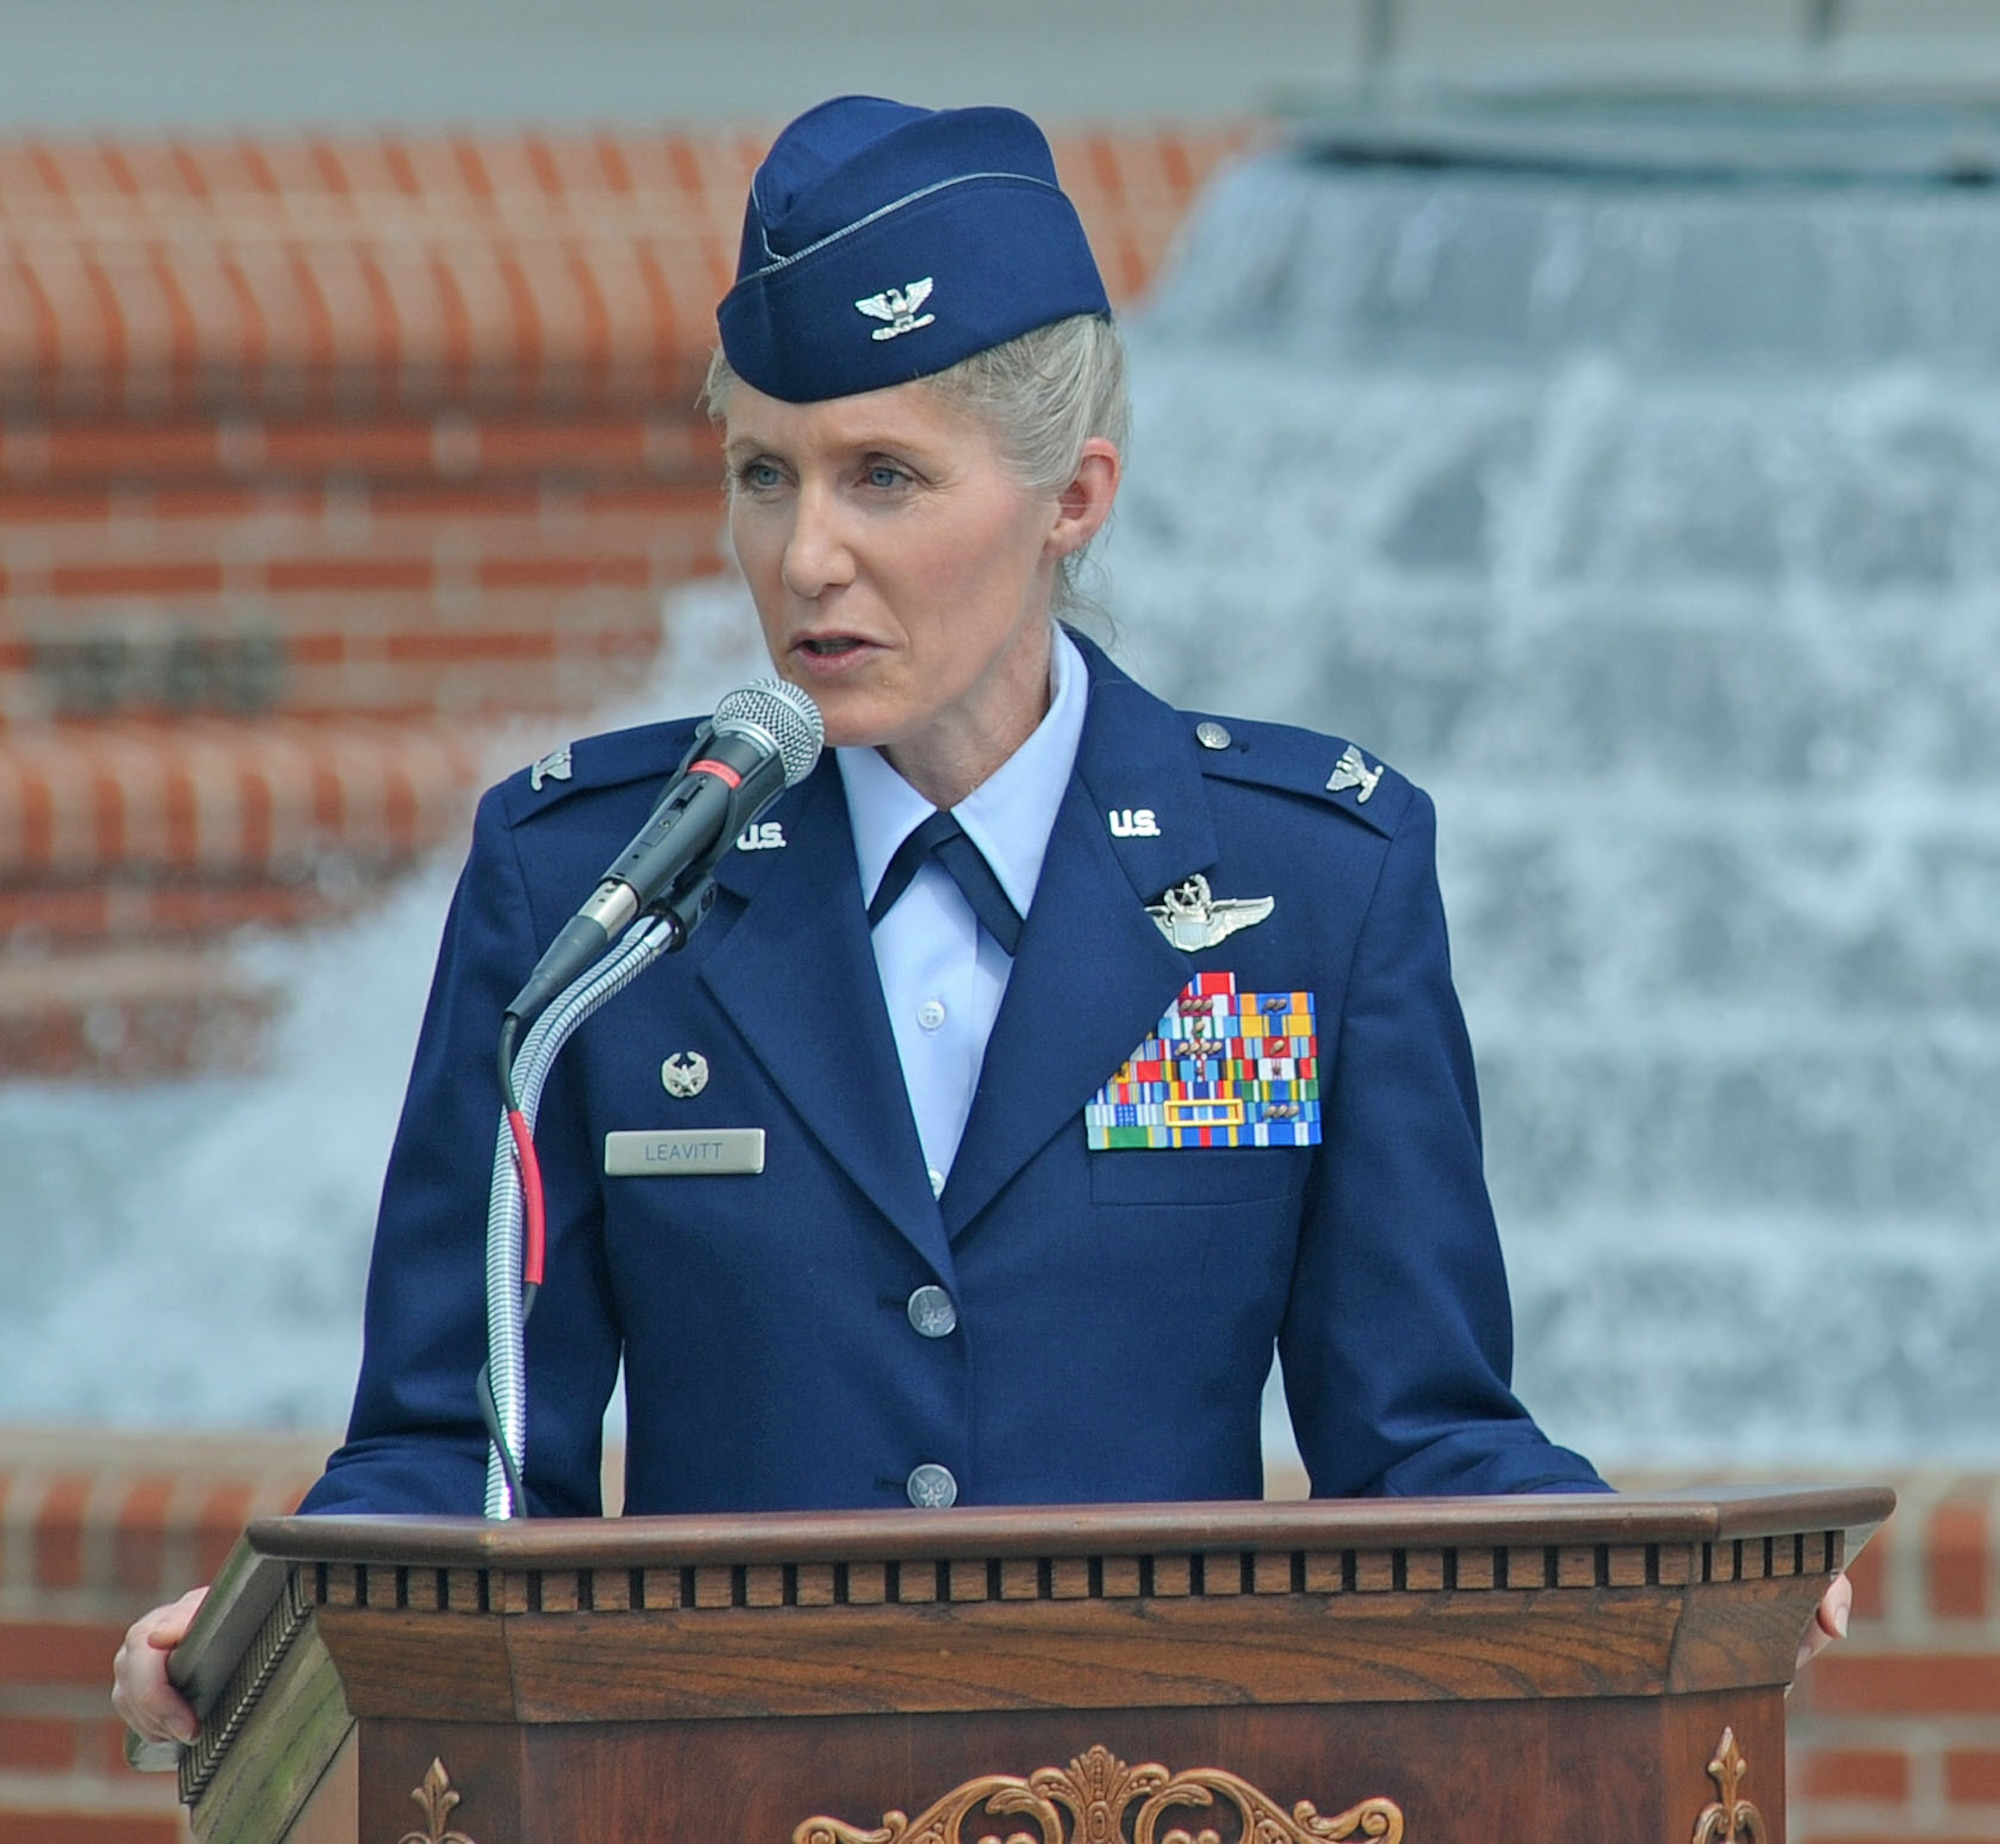 U.S. Air Force Col. Jeannie Leavitt speaks to the crowd during the wing change of command ceremony on Seymour Johnson Air Force Base, N.C., June 1, 2012. Leavitt is the first female to command an Air Force fighter wing. Since becoming the first mission-qualified female fighter pilot, she has logged more than 2,500 hours in the F-15E Strike Eagle. Leavitt is the 4th Fighter Wing commander.  (U.S. Air Force photo/Tech. Sgt. Colette Graham/Released)